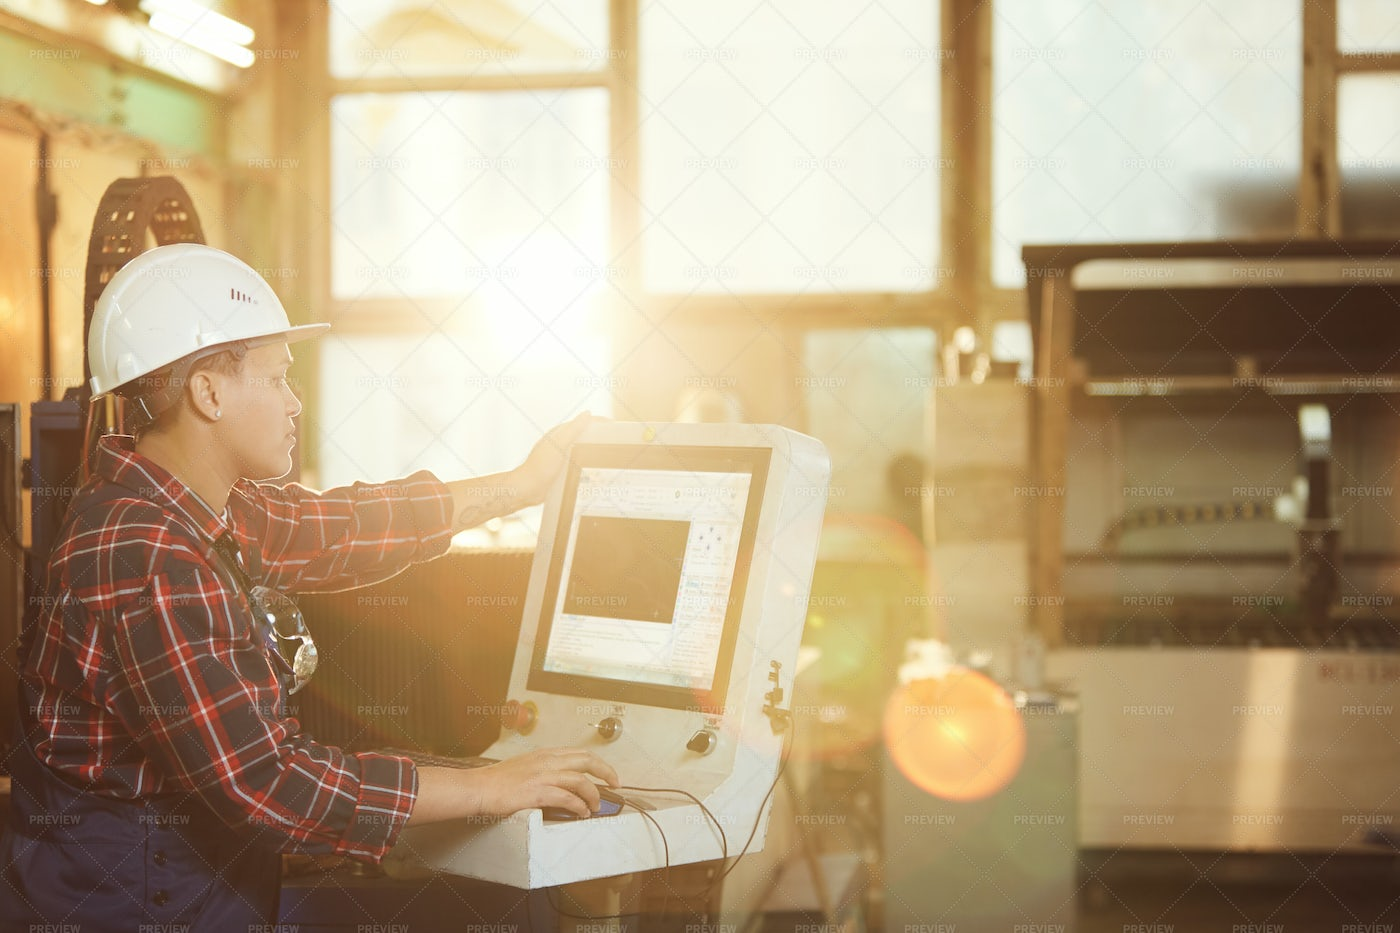 Female Worker Operating Electronic...: Stock Photos